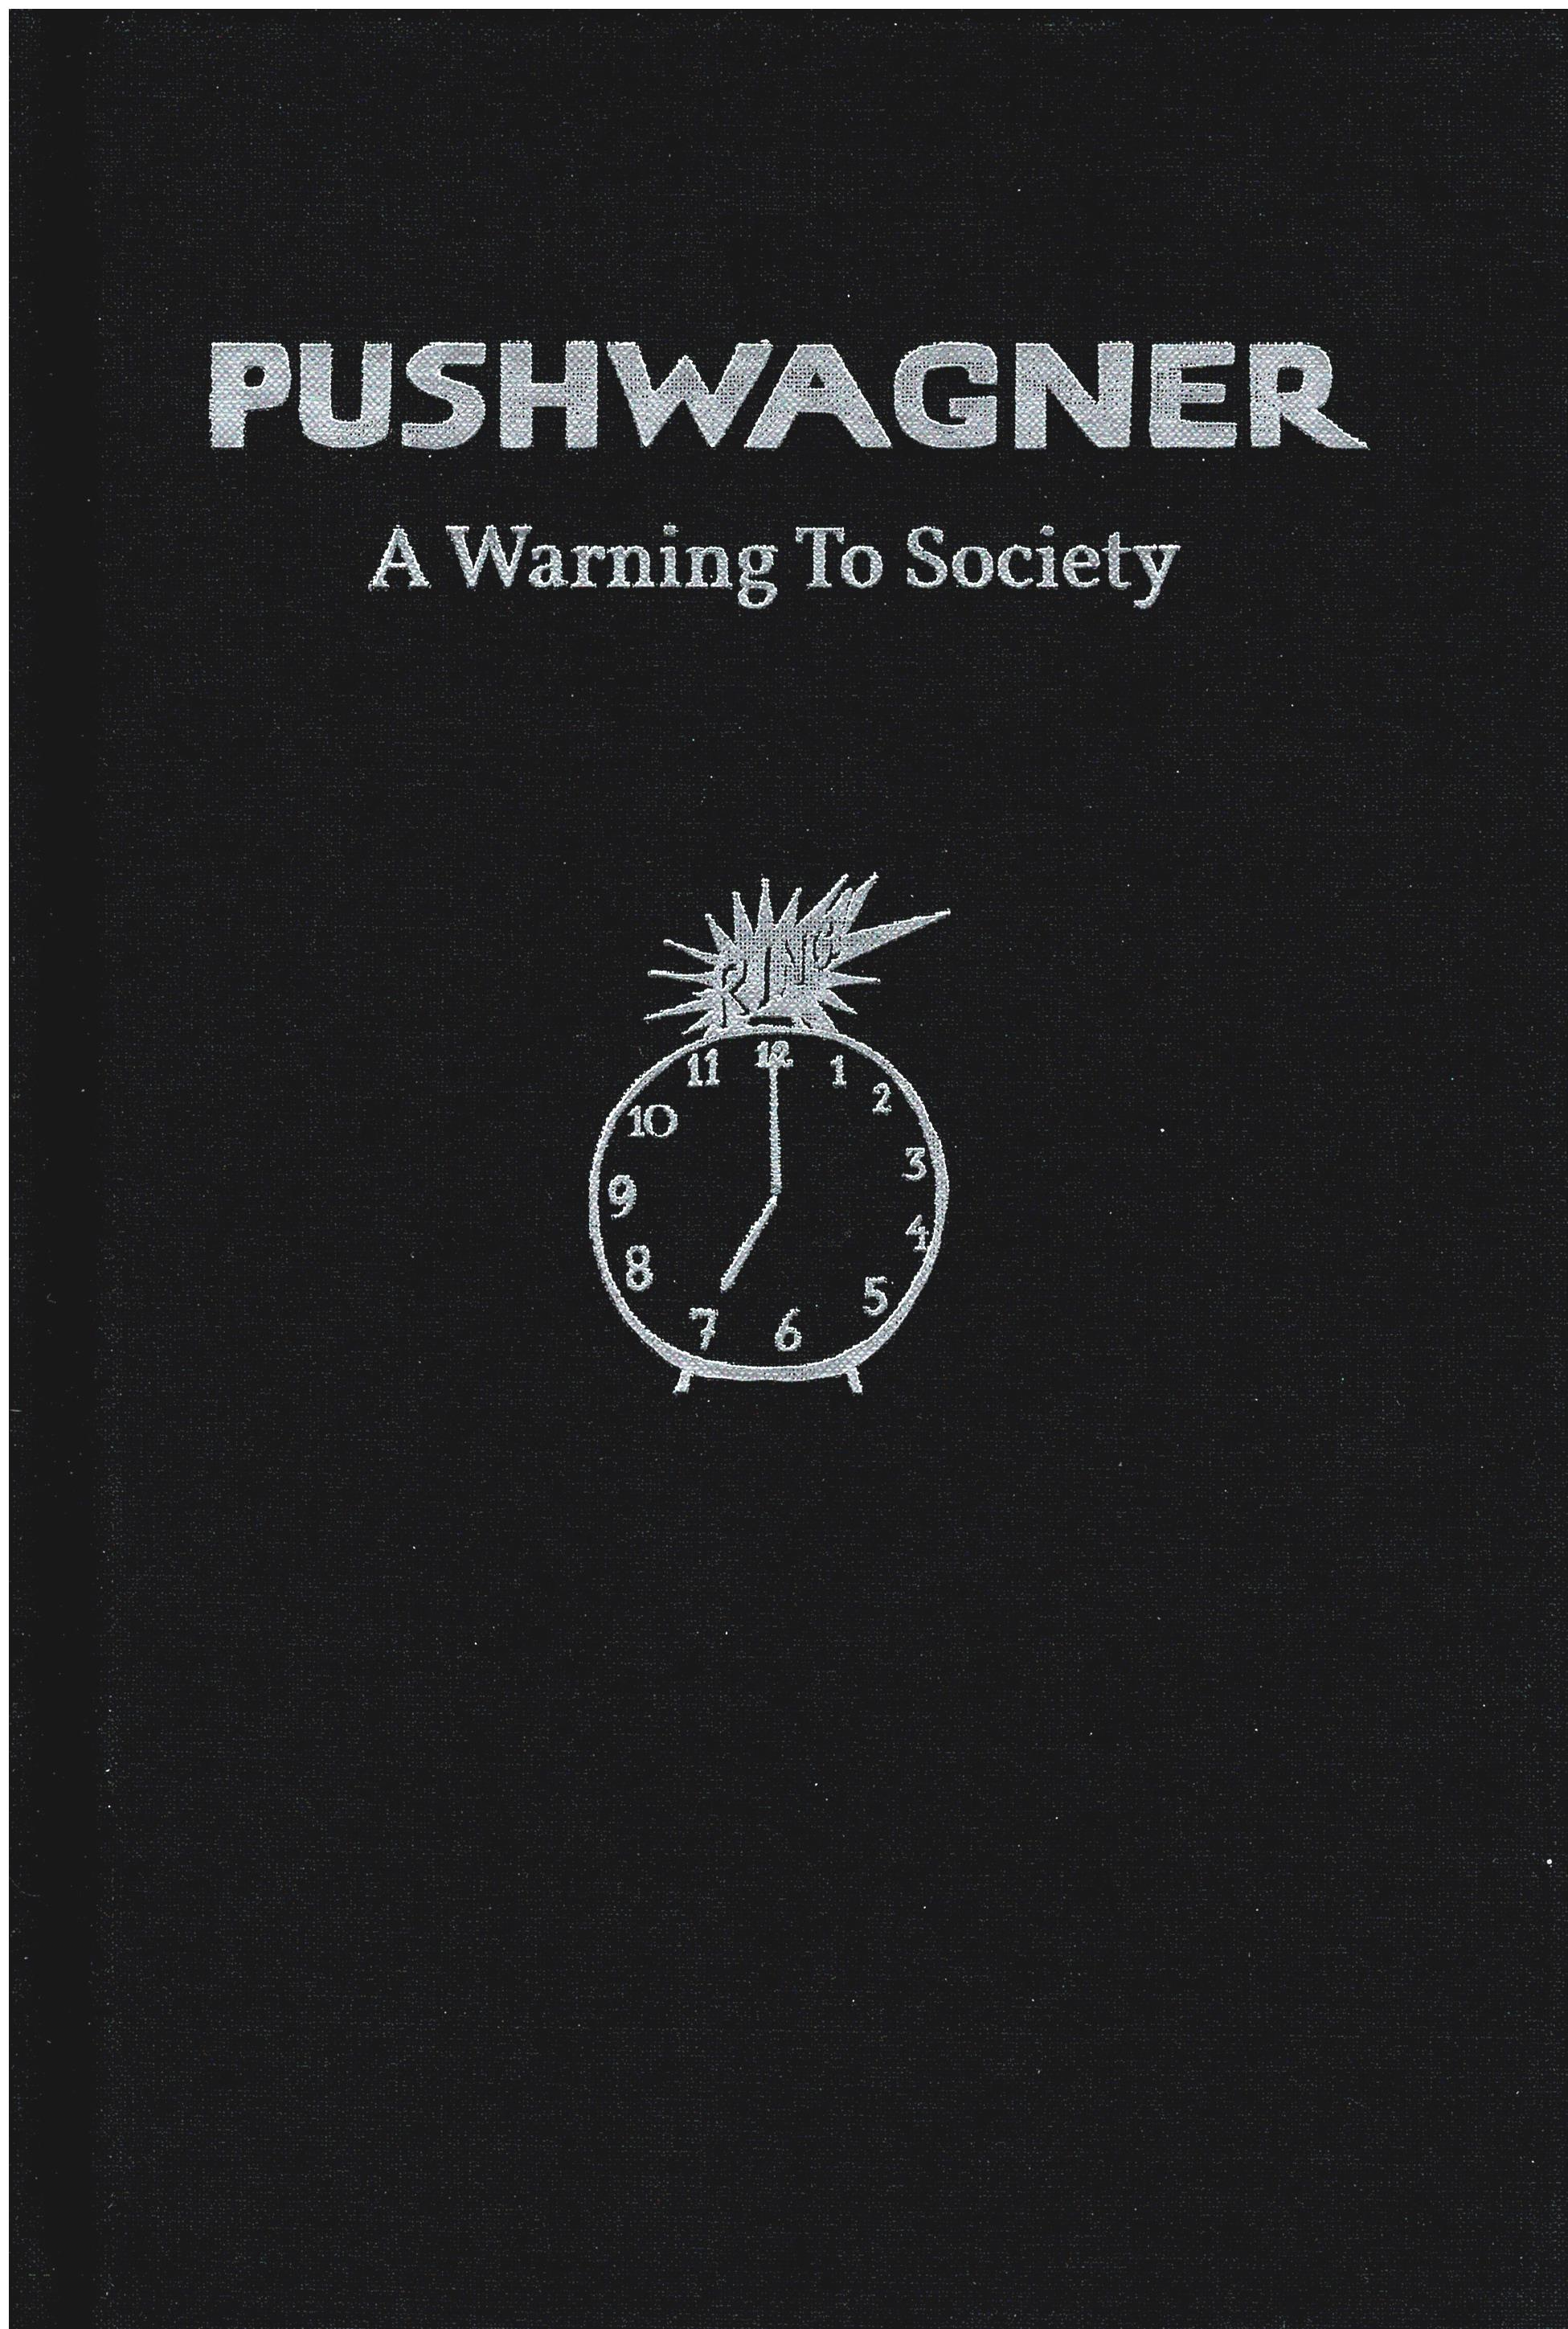 Pushwagner - A Warning To Society